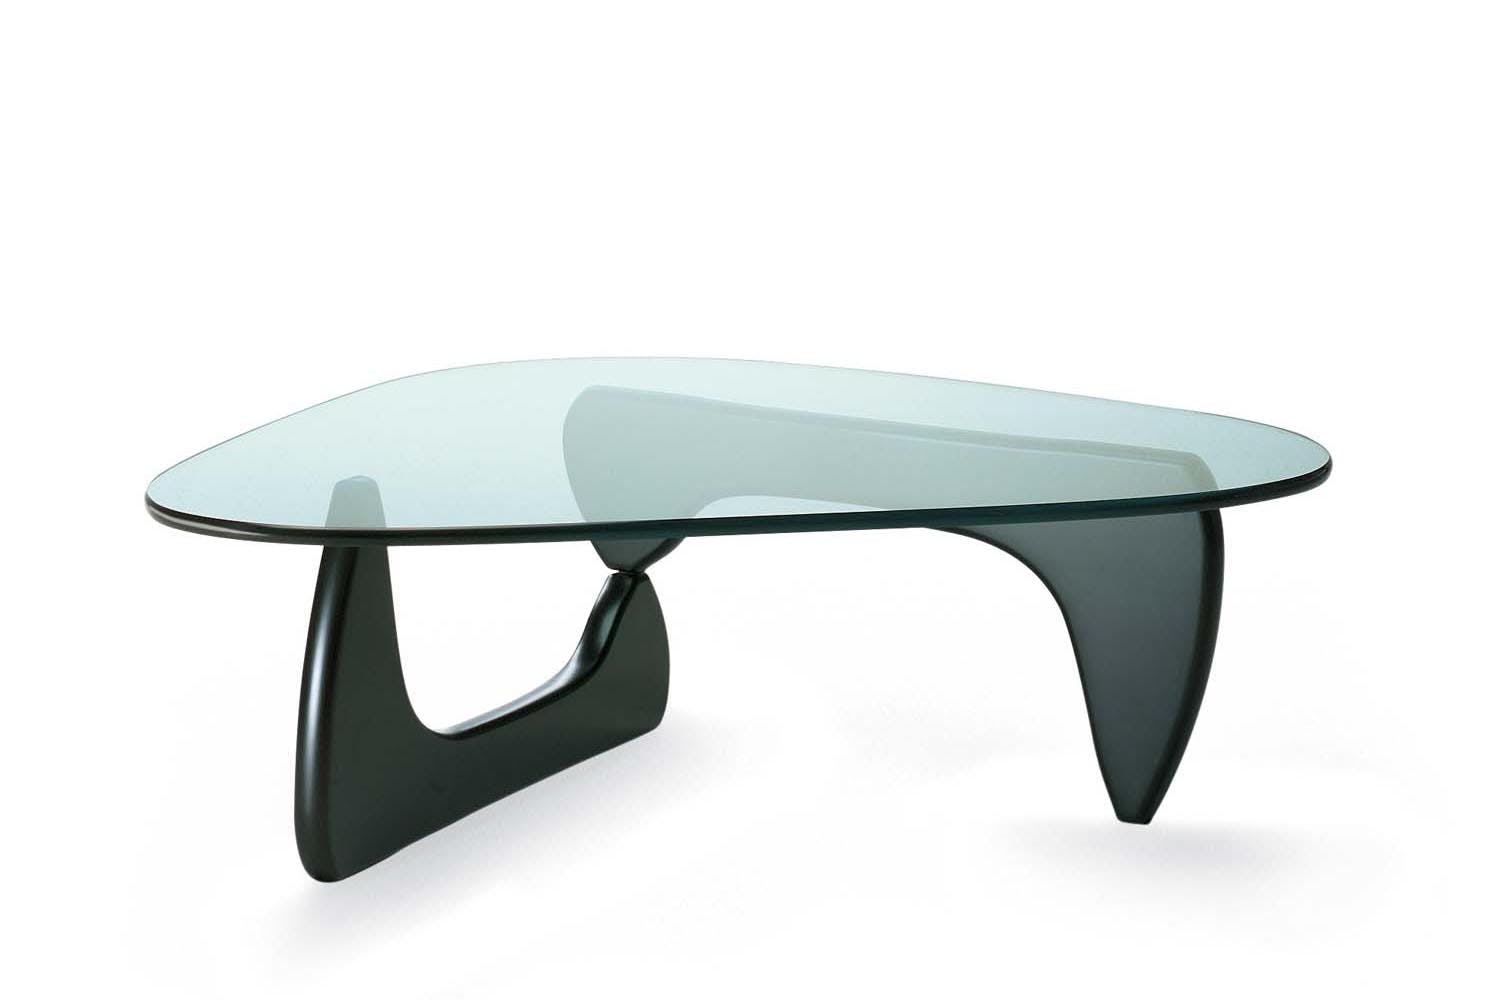 Noguchi Coffee Table Black Ash By Isamu Noguchi For Vitra Space Furniture